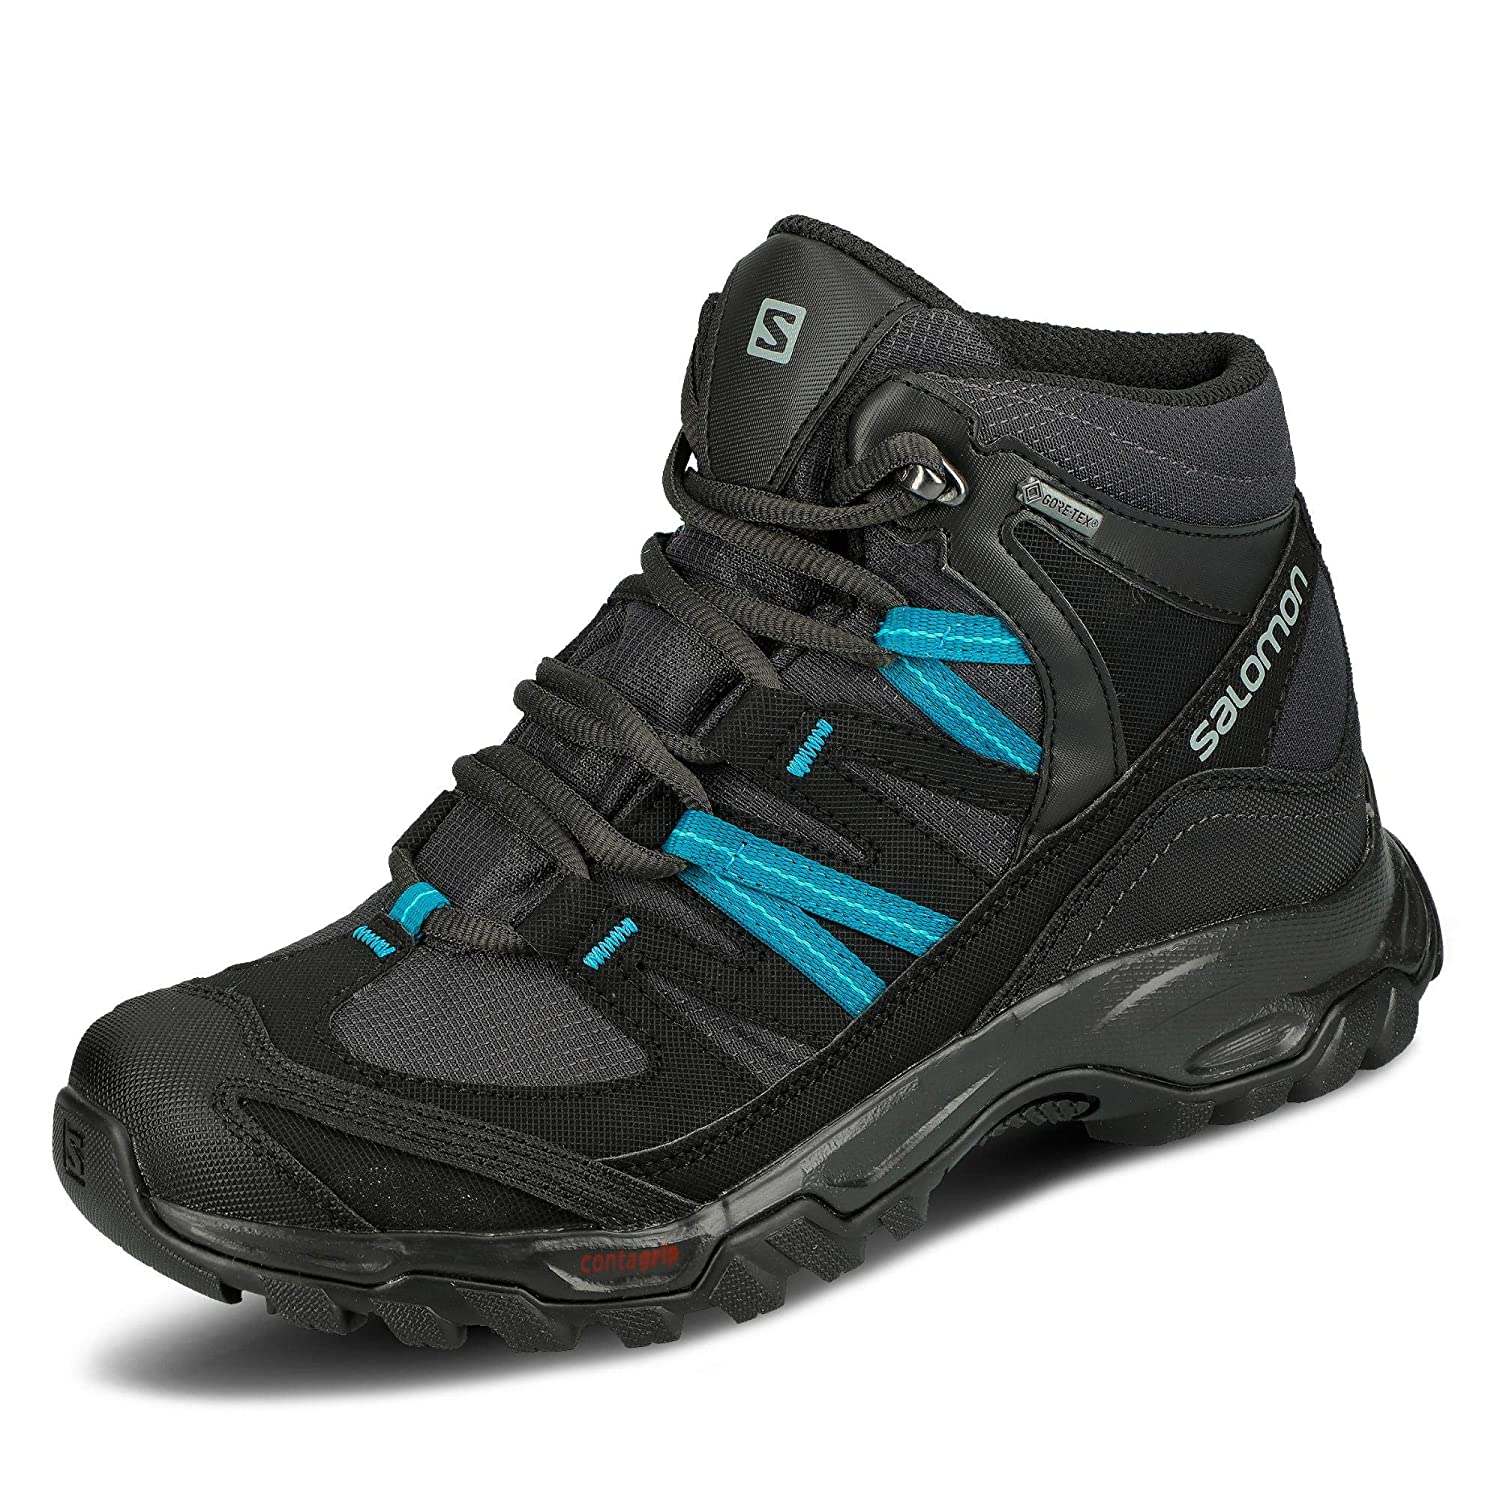 SALOMON Shindo Mid GTX: Amazon.co.uk: Shoes & Bags